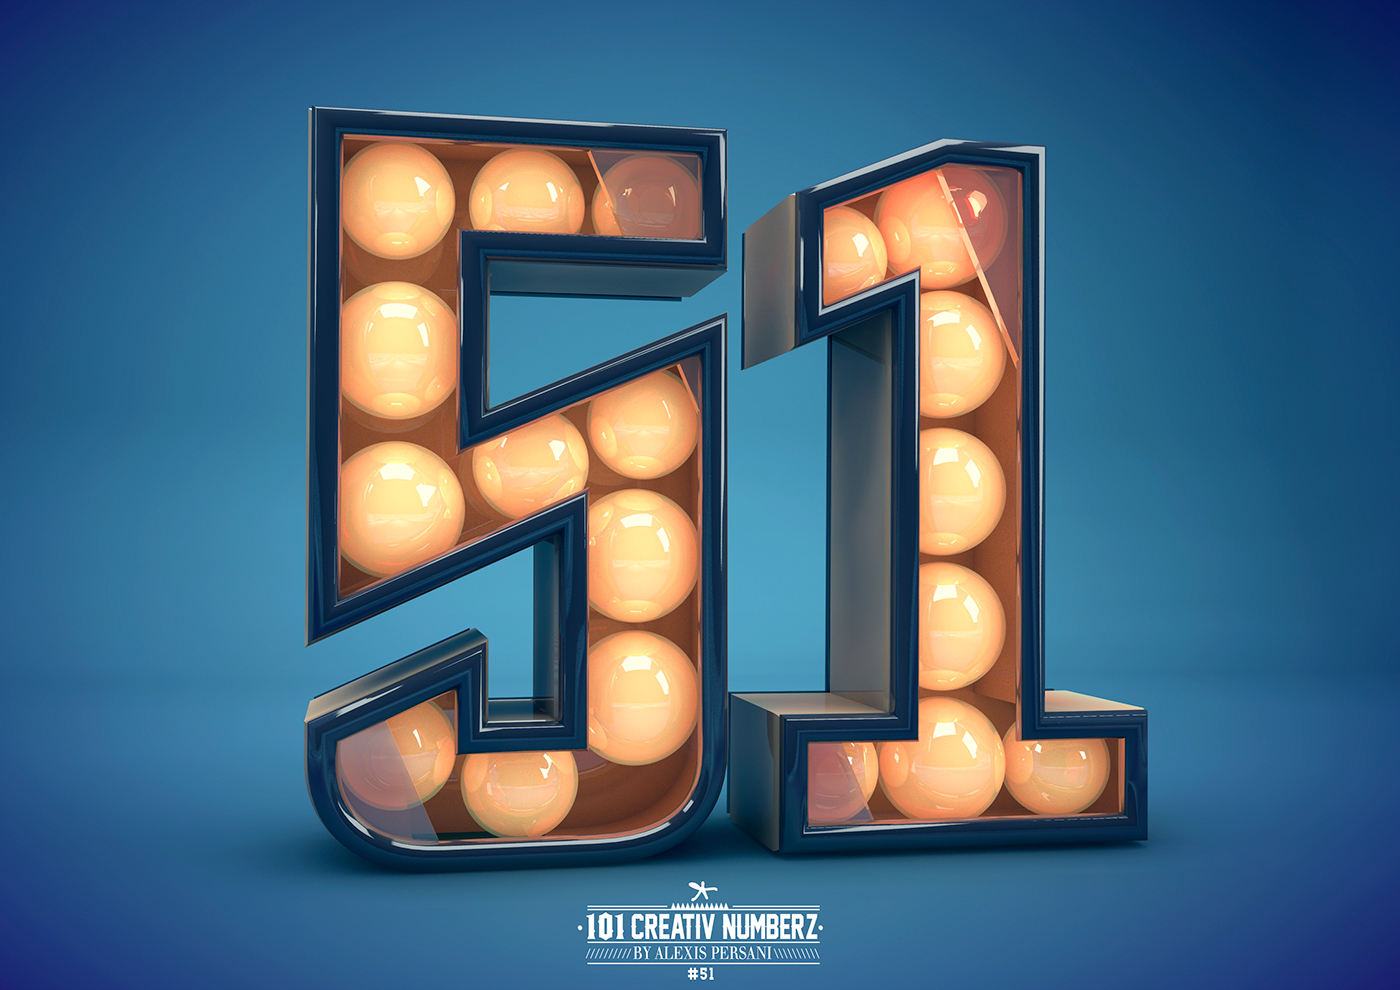 Outstanding 101 Creative Numbers Typography by Alexis Persani 47